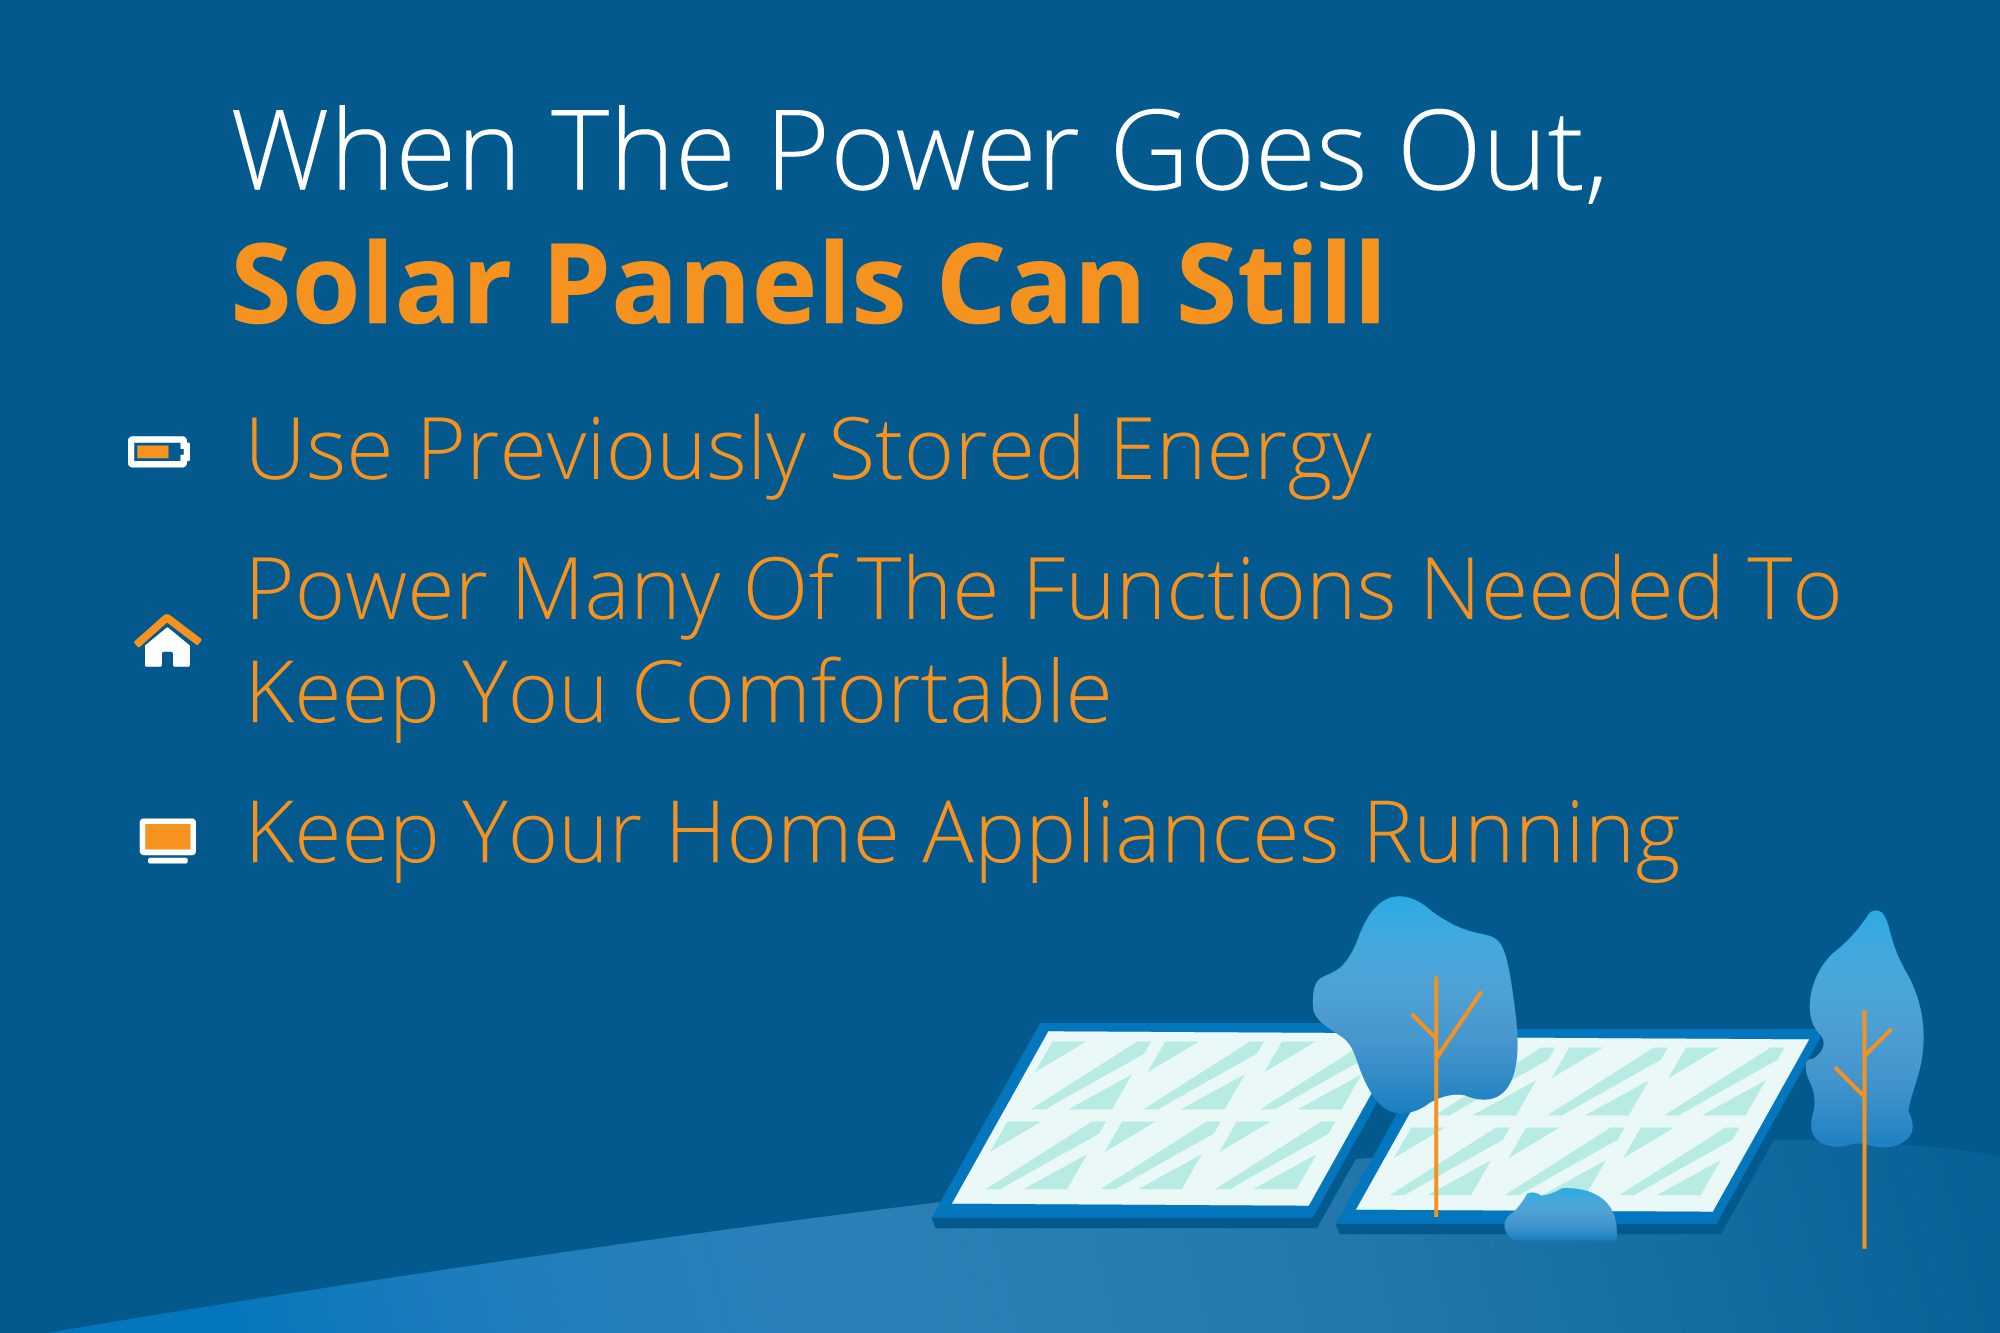 When the power goes out Solar Panels can...